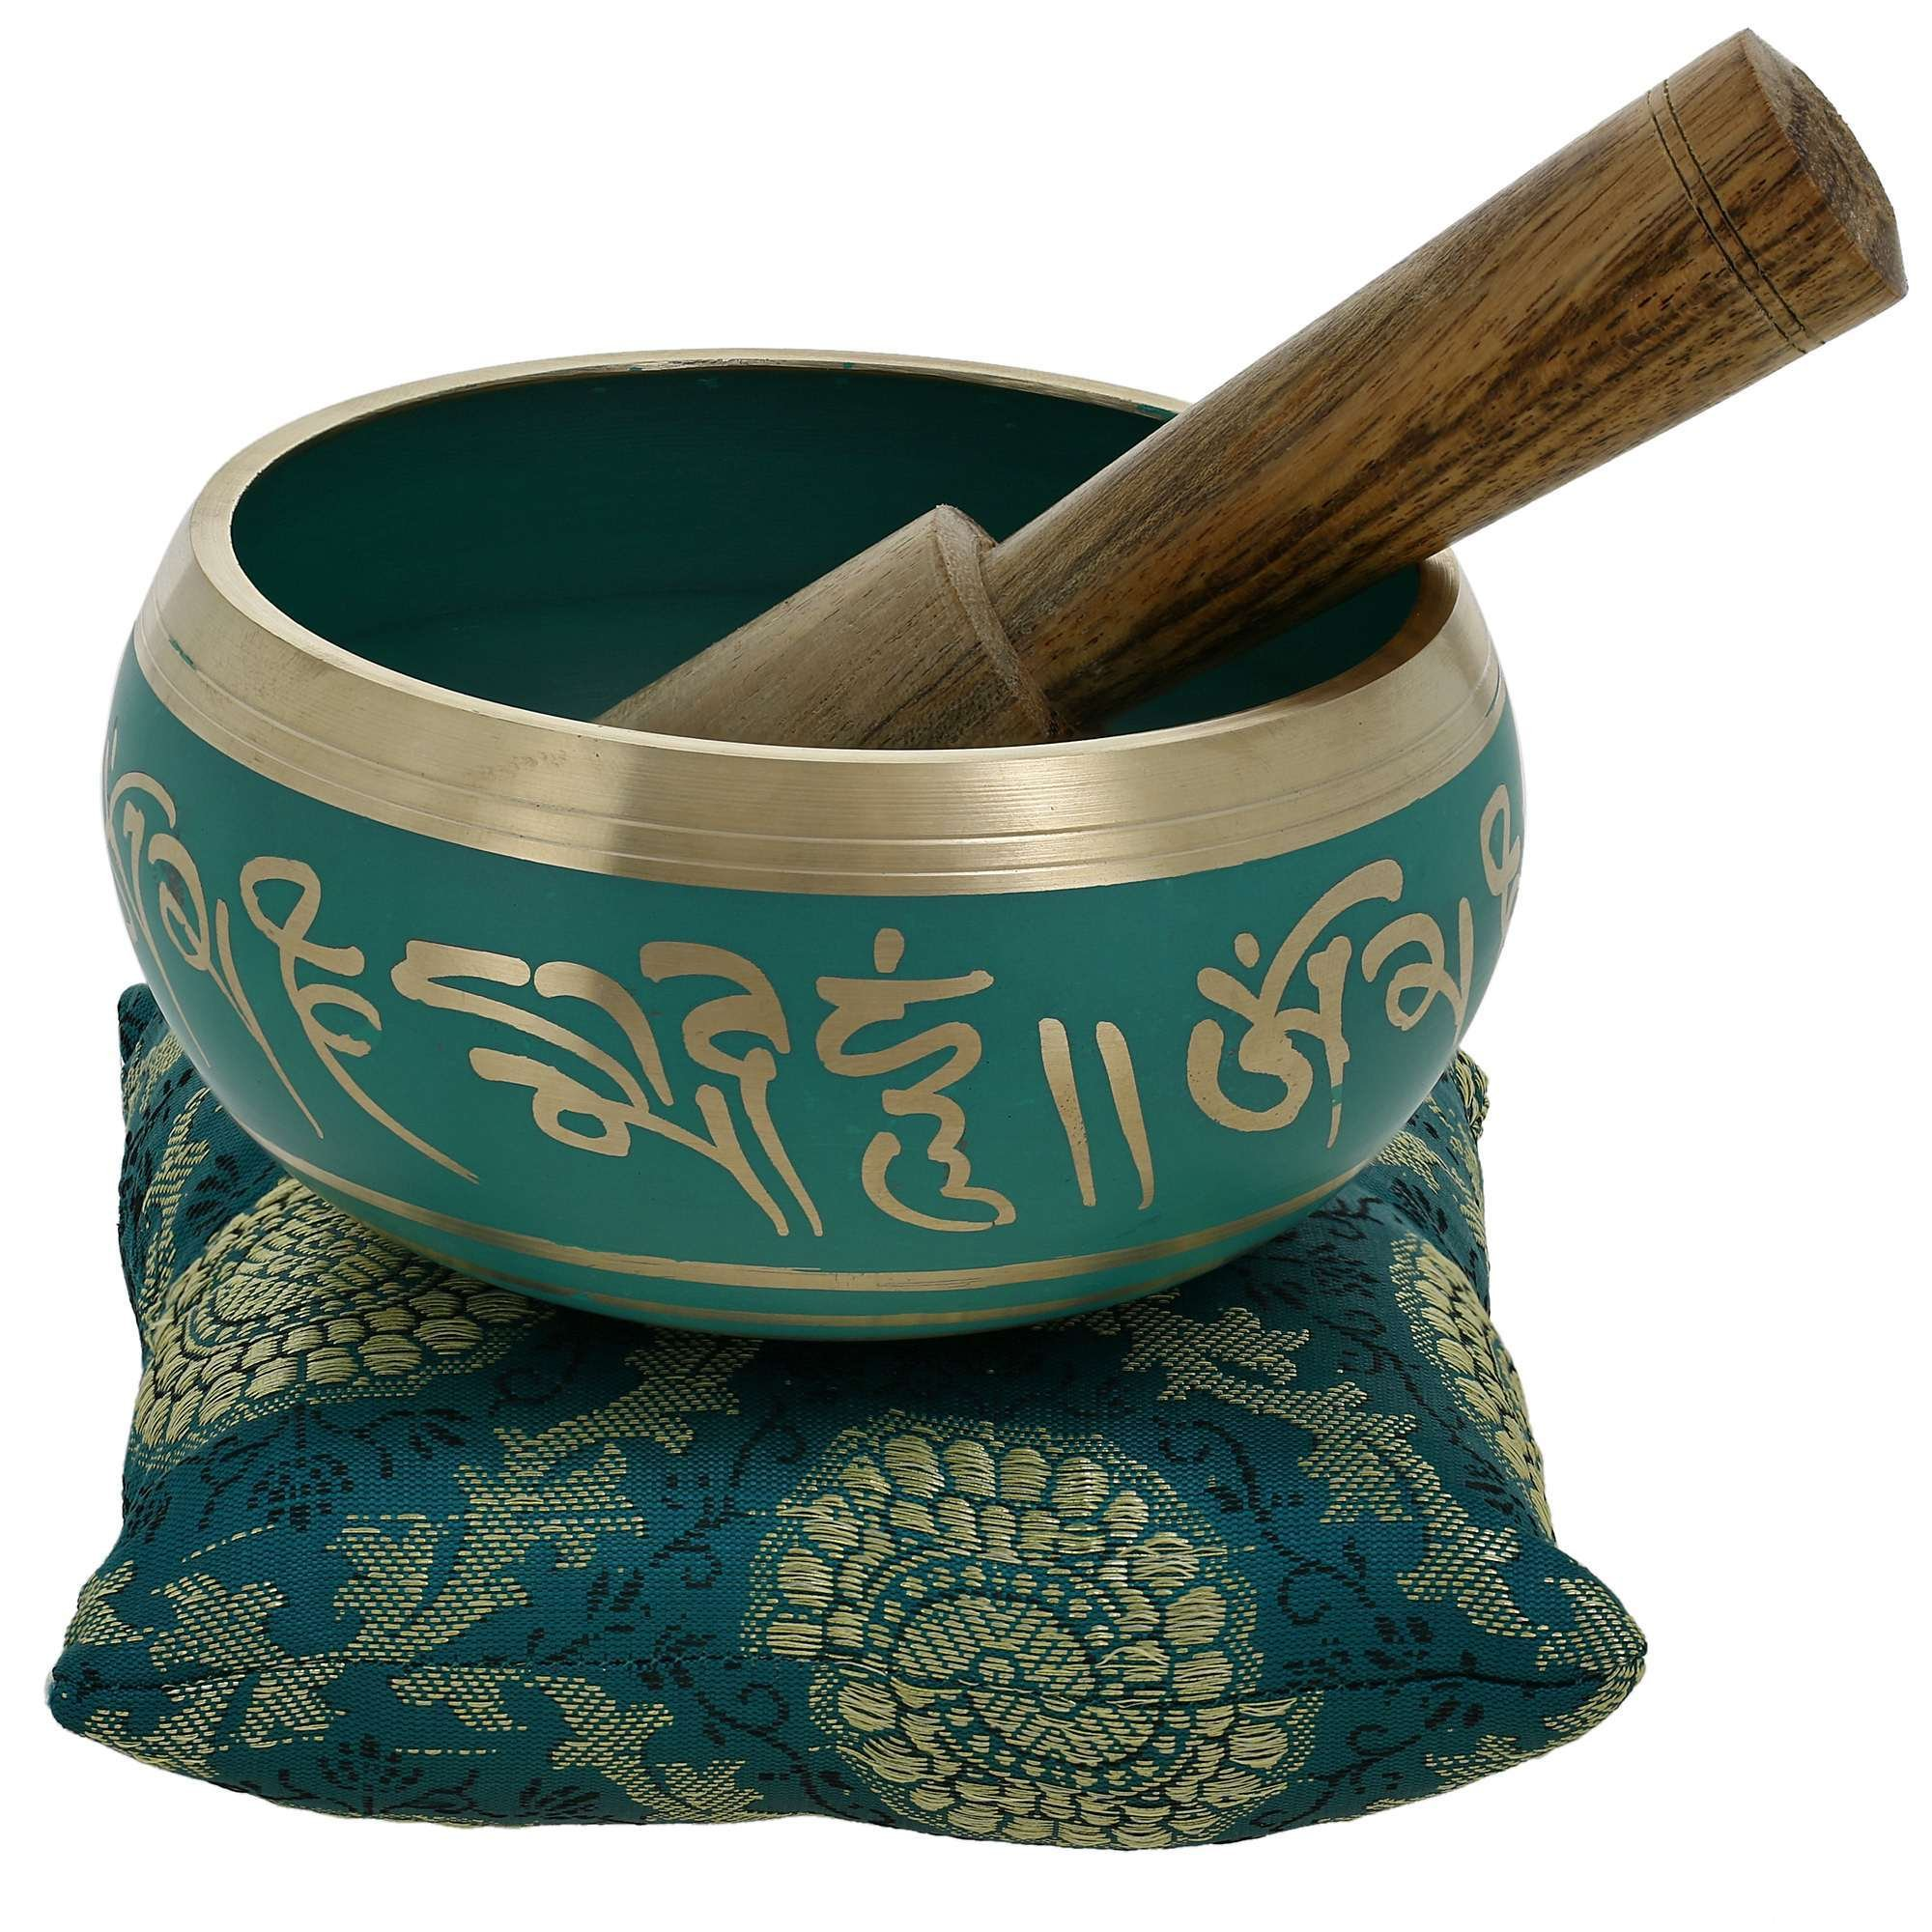 ShalinIndia 4 Inches Hand Painted Metal Tibetan Buddhist Singing Bowl Musical Instrument for Meditation with Stick and Cushion by ShalinIndia